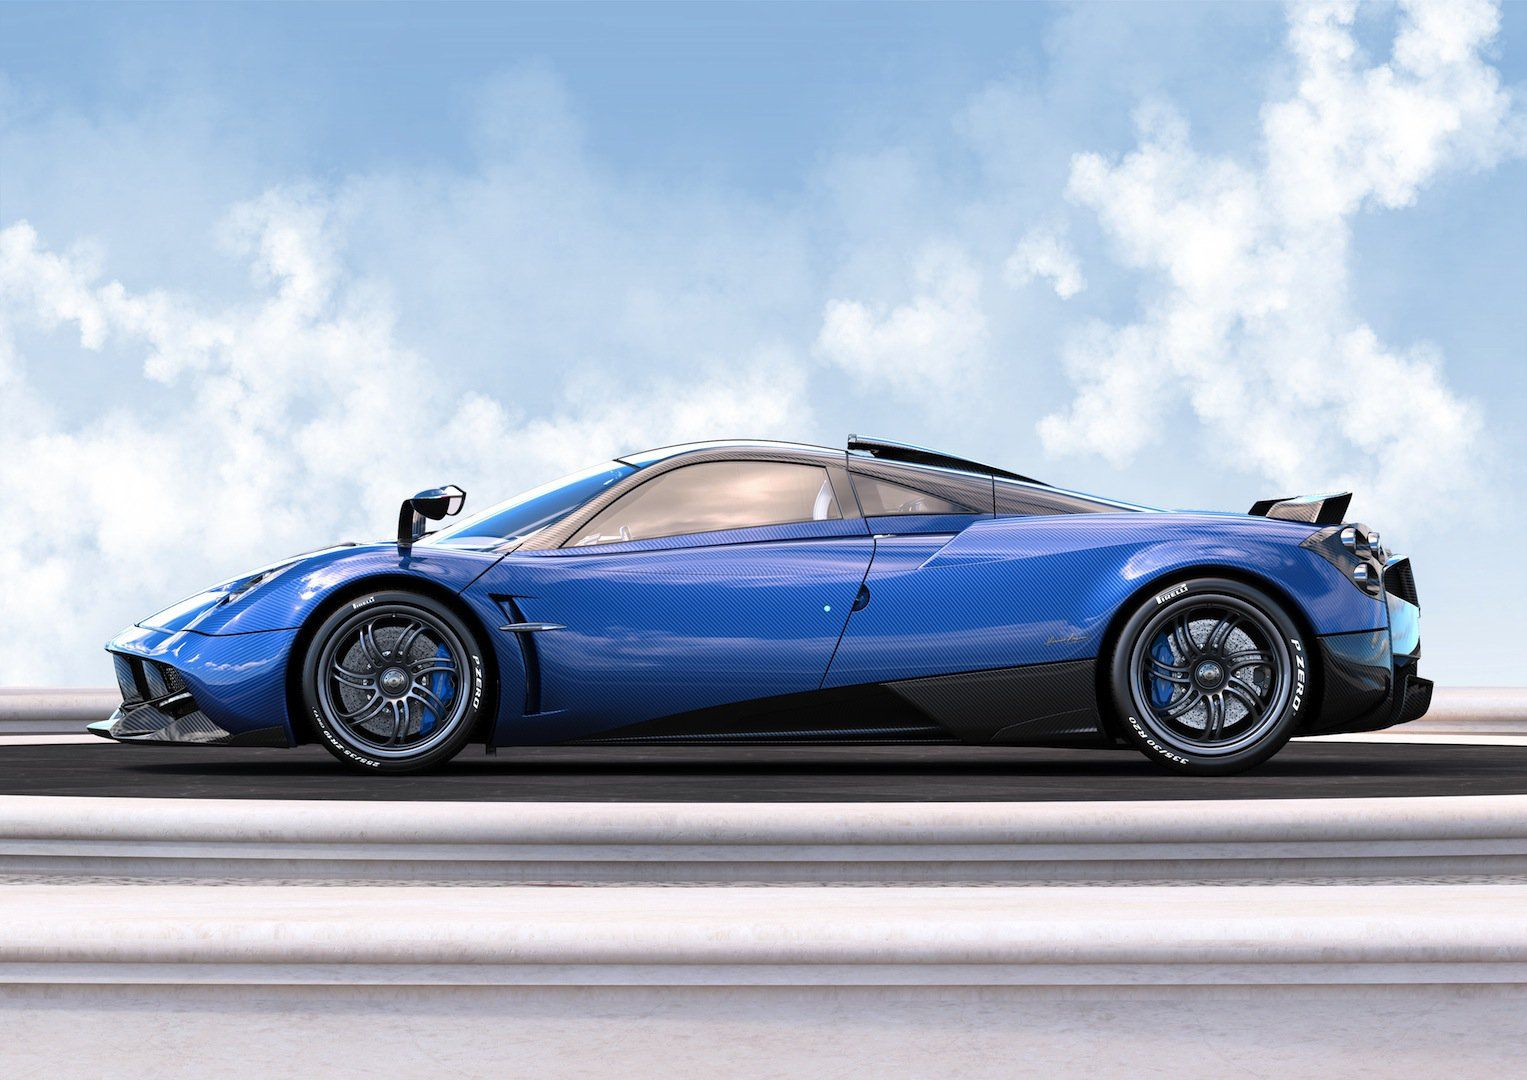 Carbon Blue Pagani Huayra Pearl One Off Edition Side View Image